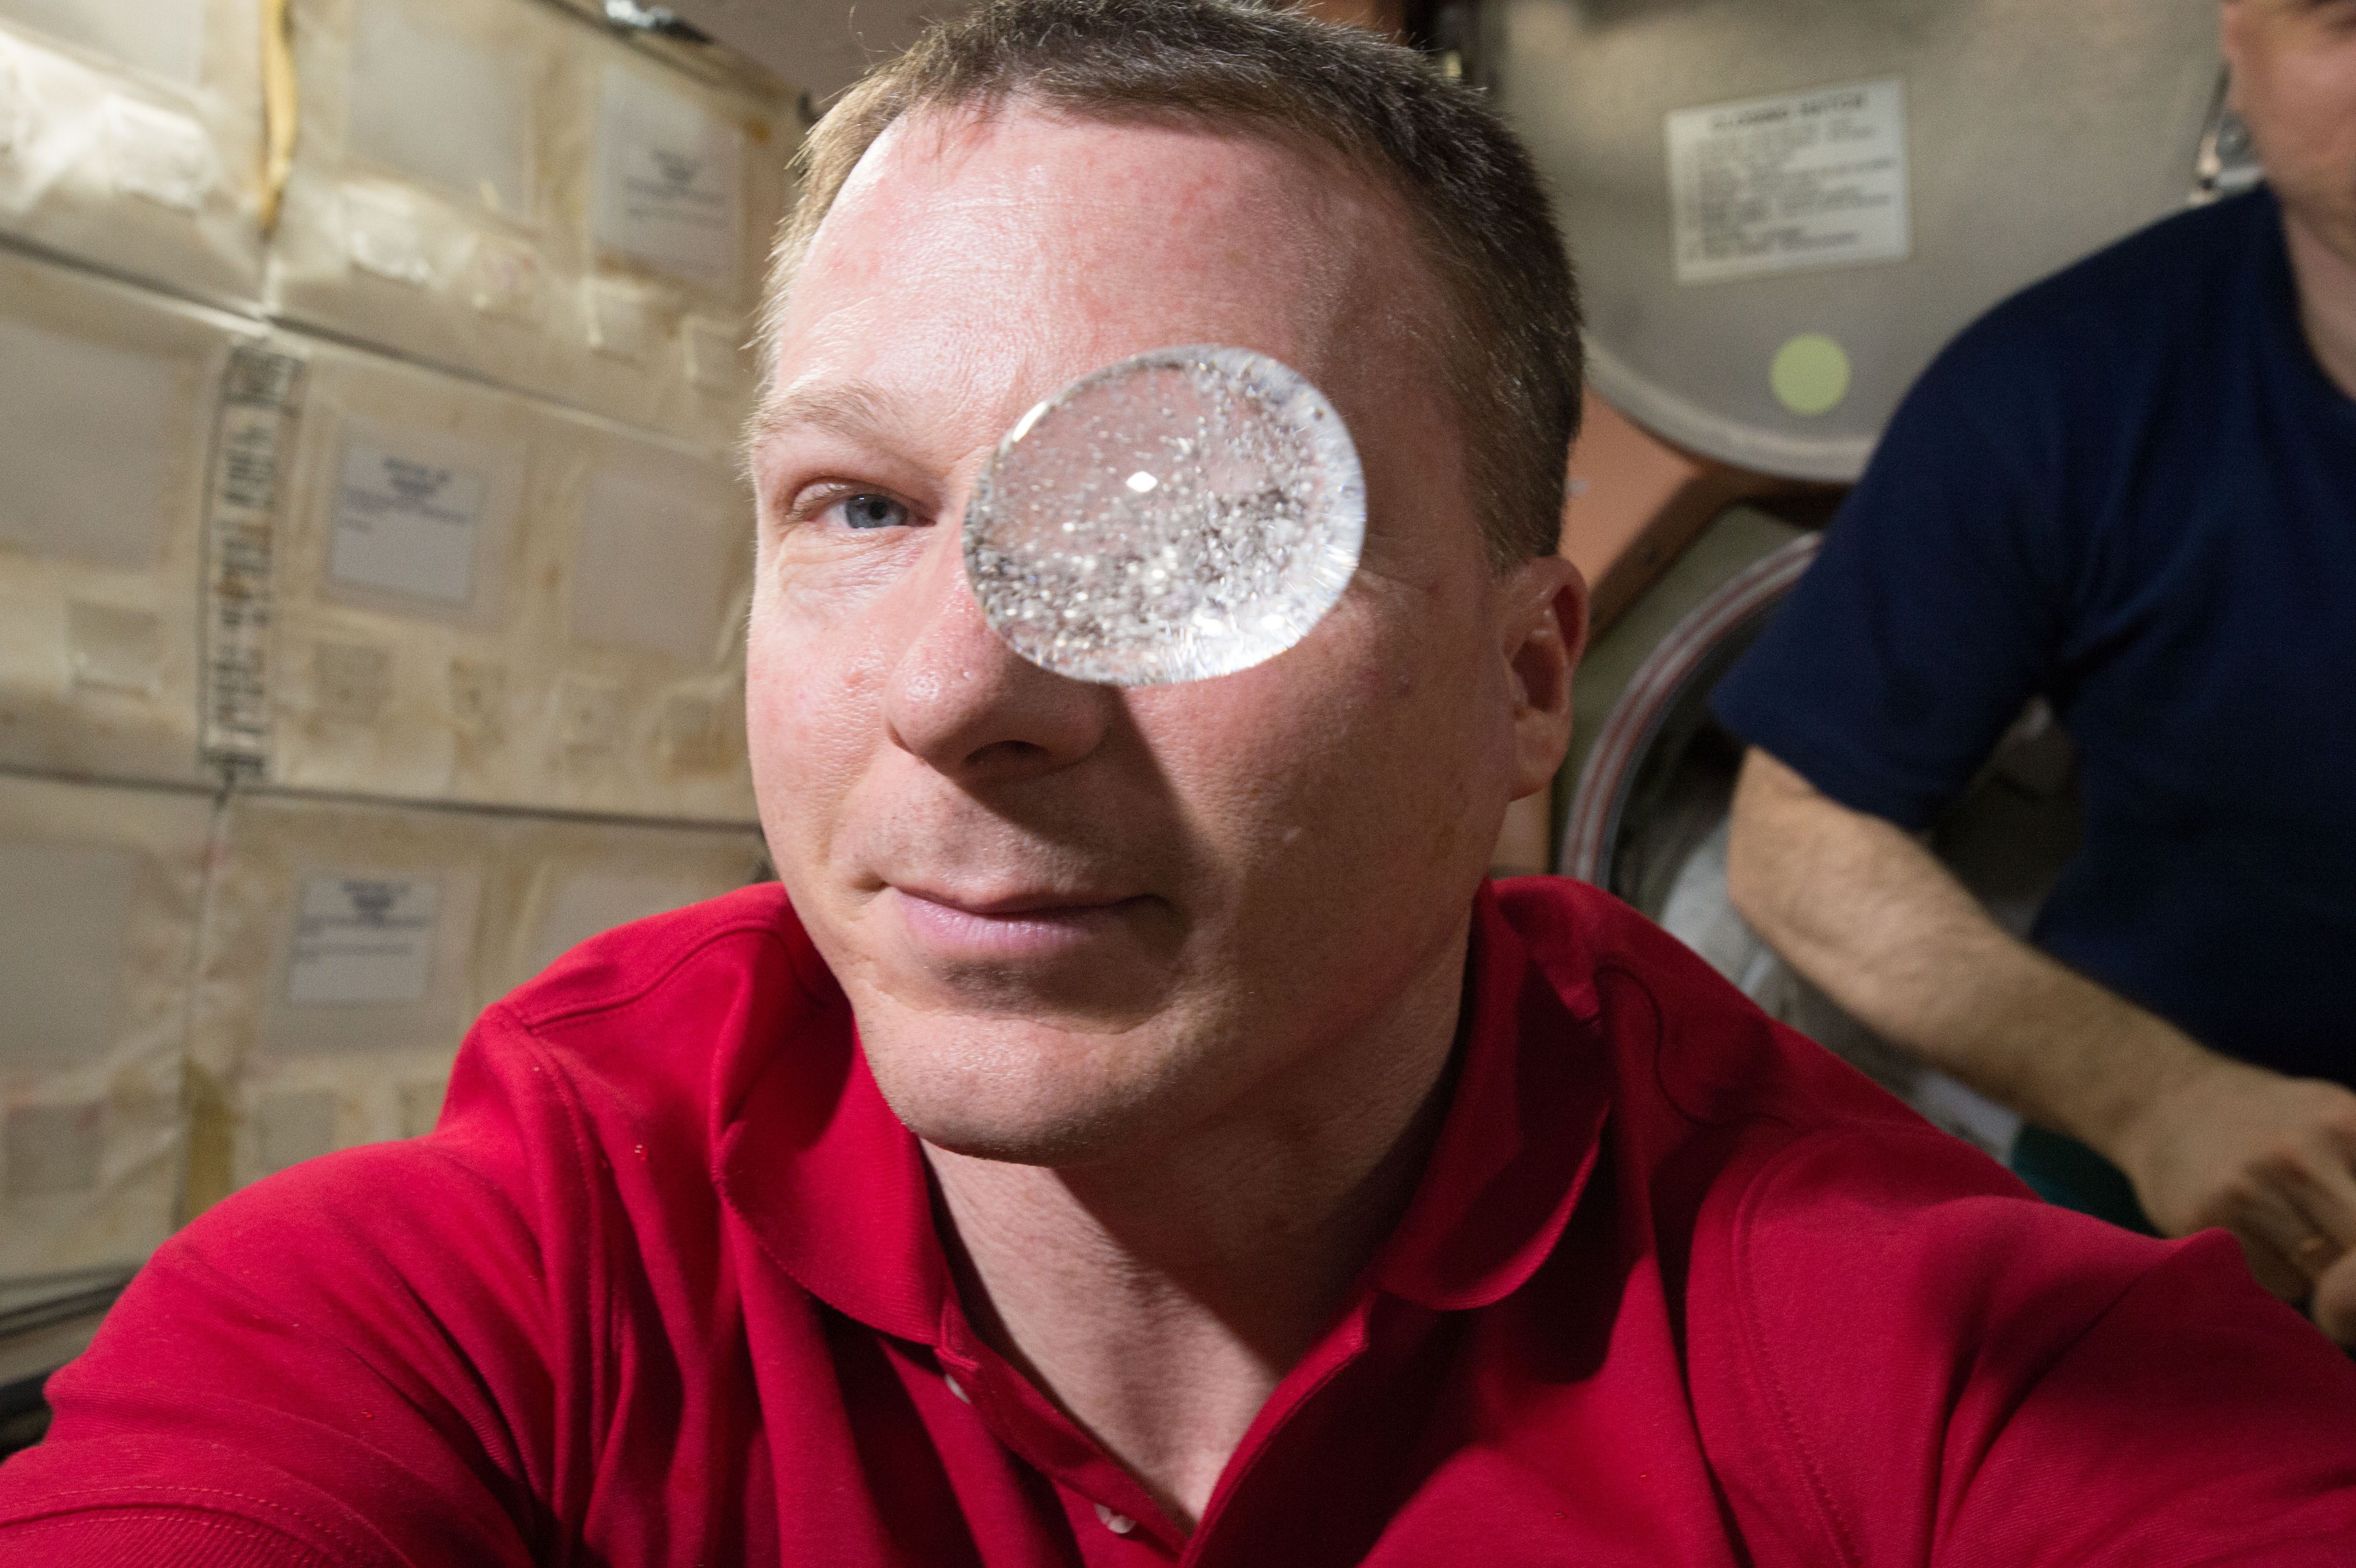 Astronaut Terry Virts inserted an effervescent antacid tablet into a ball of water while crewmates filmed the reaction with the Red Epic Dragon camera. Image courtesy NASA. For a larger version of this image please go here.